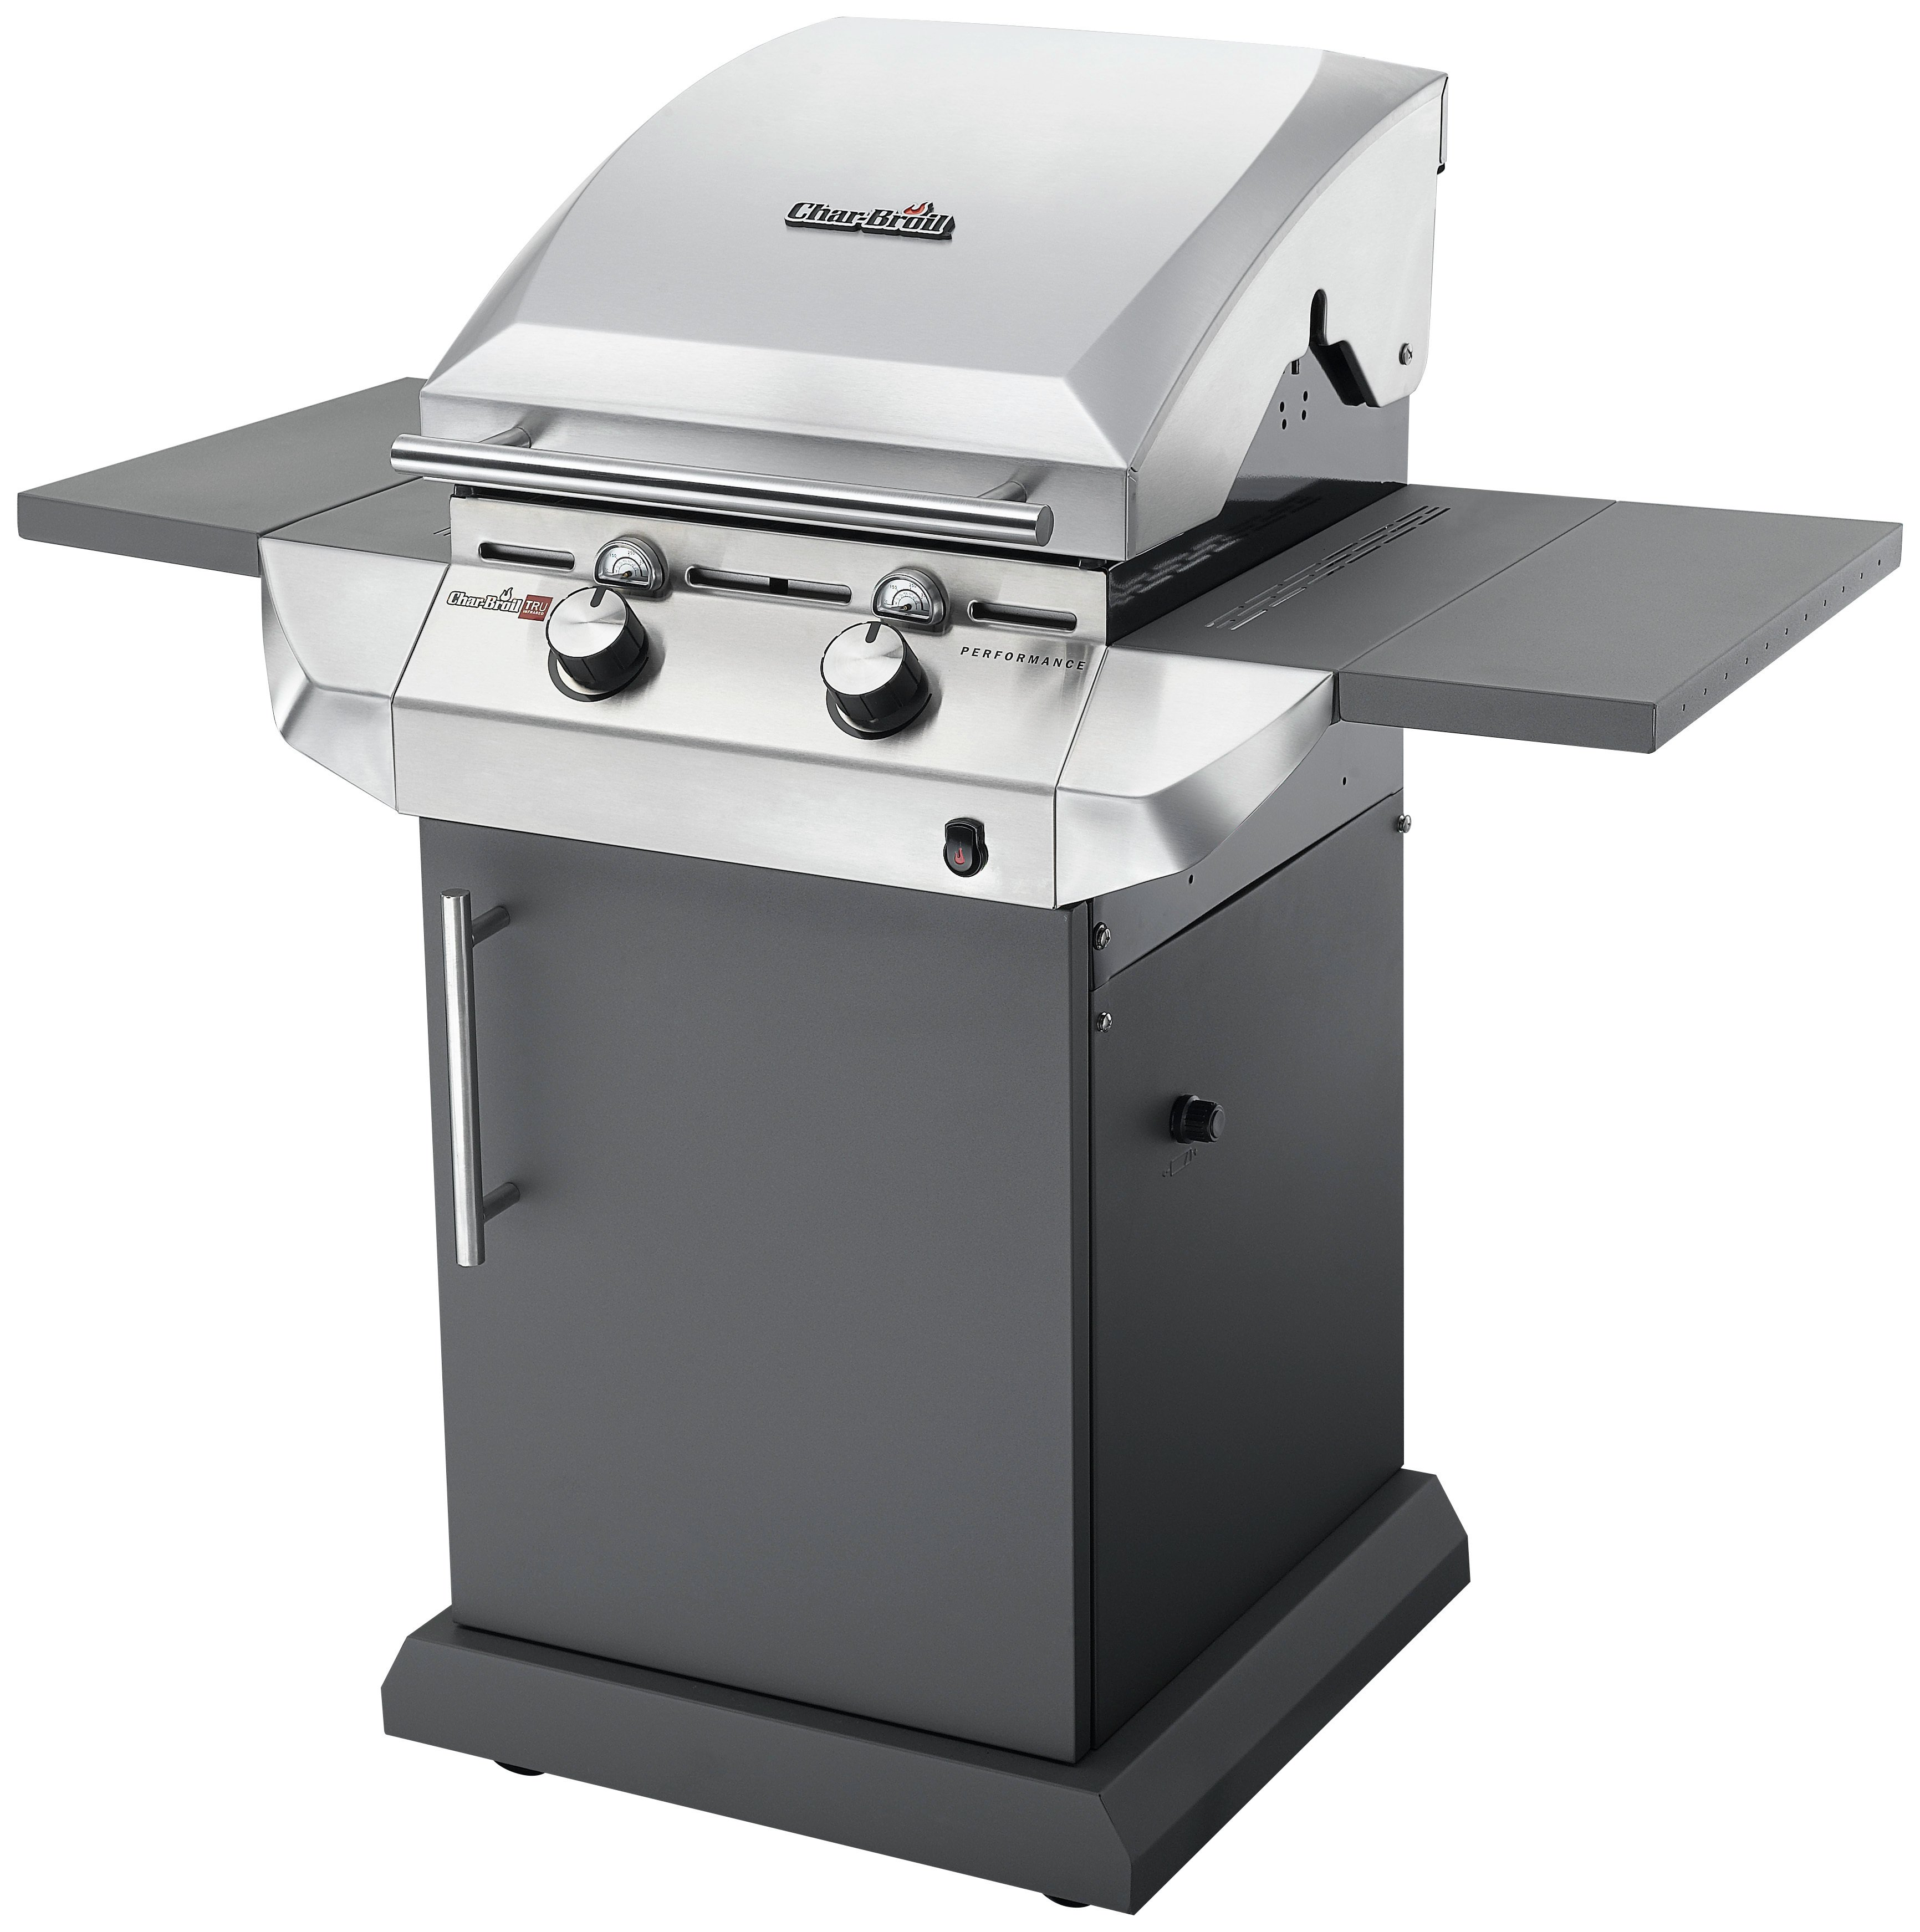 Char-Broil T22G - 2 Burner Gas BBQ Grill, Stainless Steel